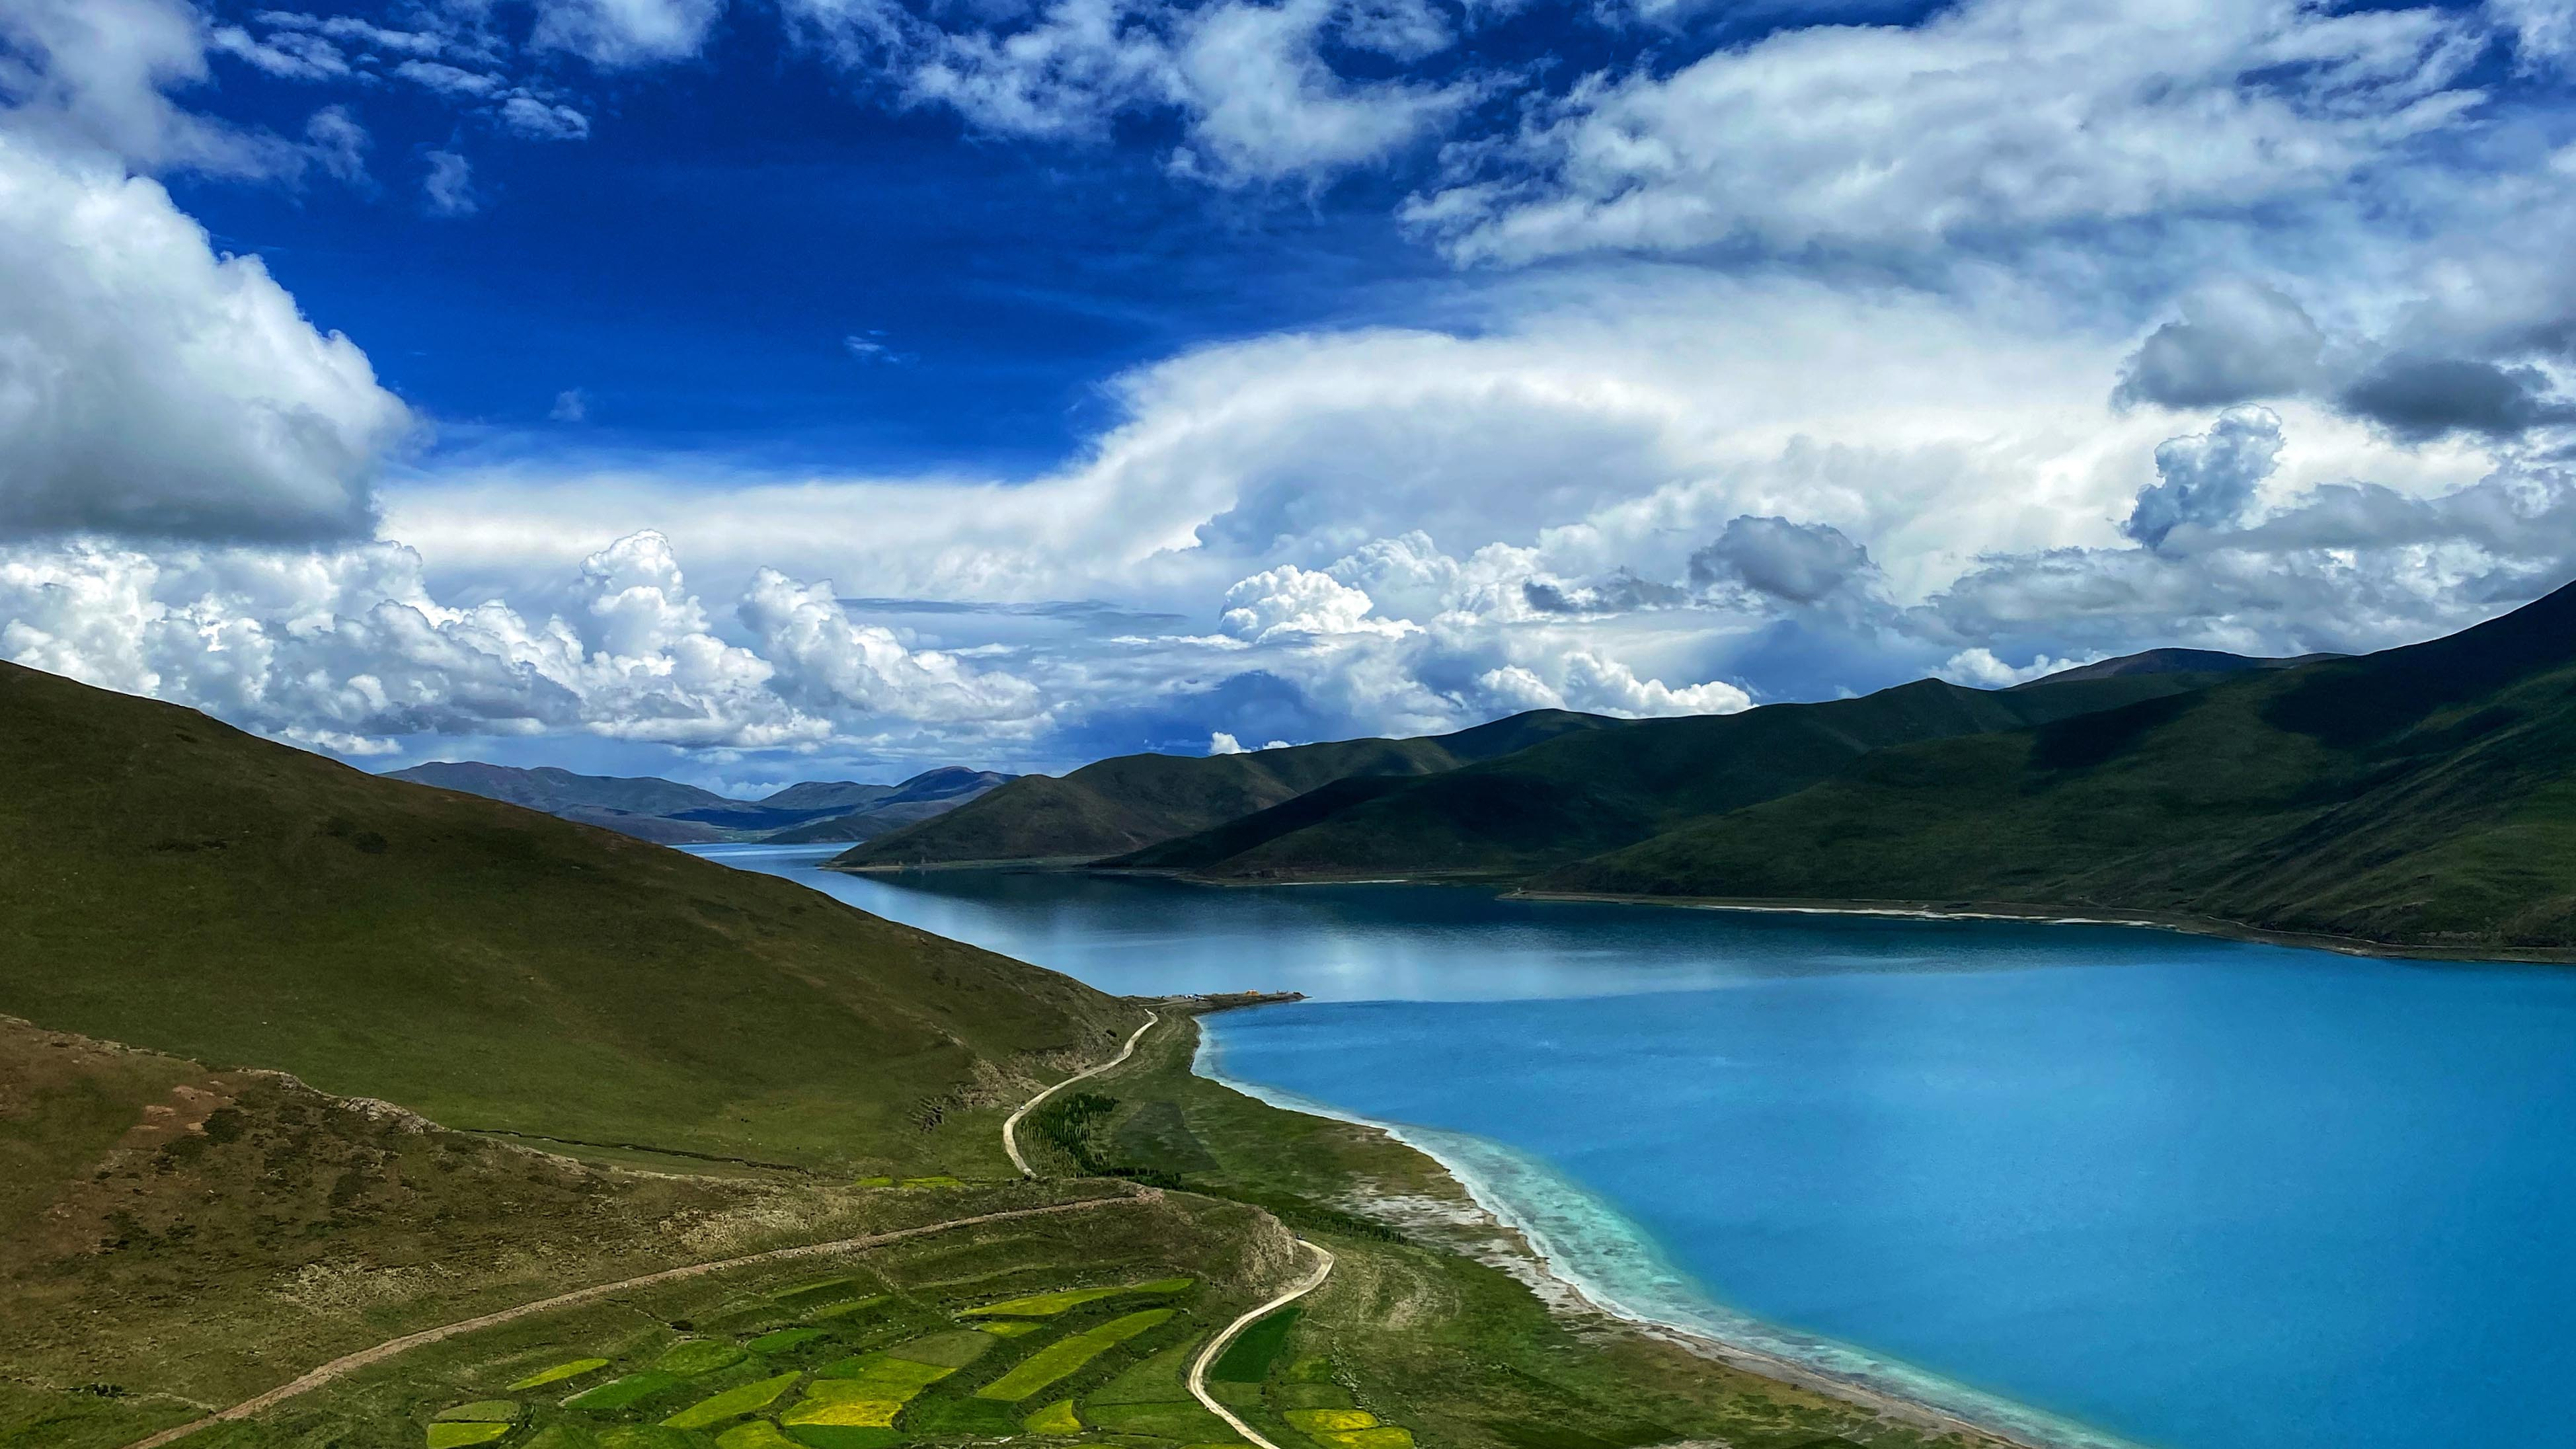 Yamdrok Lake: One of the three sacred lakes in Tibet